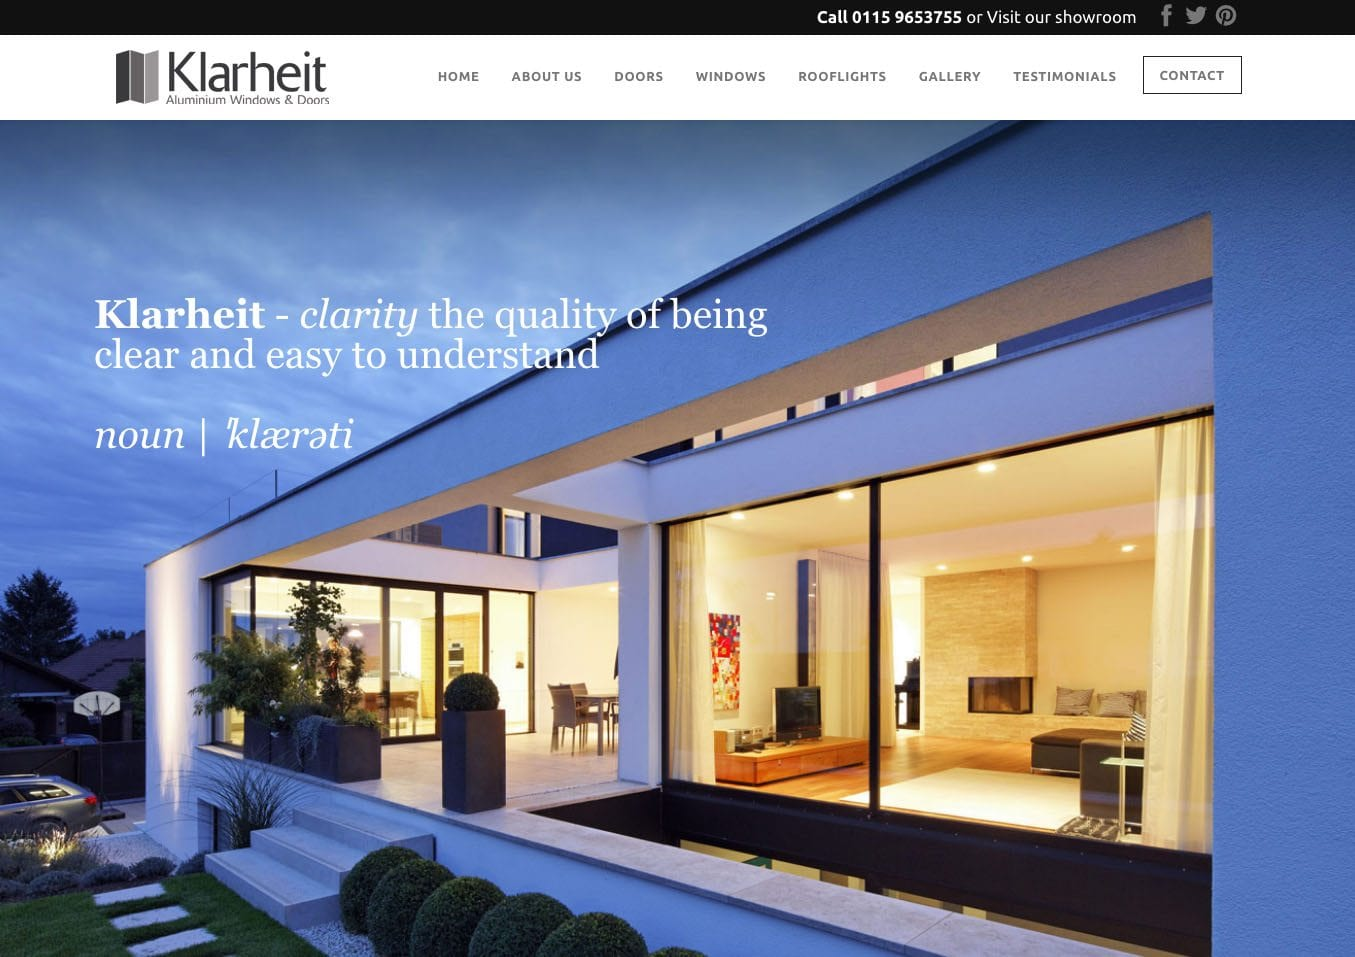 Westcoast Windows are pleased to welcome Klarheit as Distributor Partners for their Swedish composite windows and doors